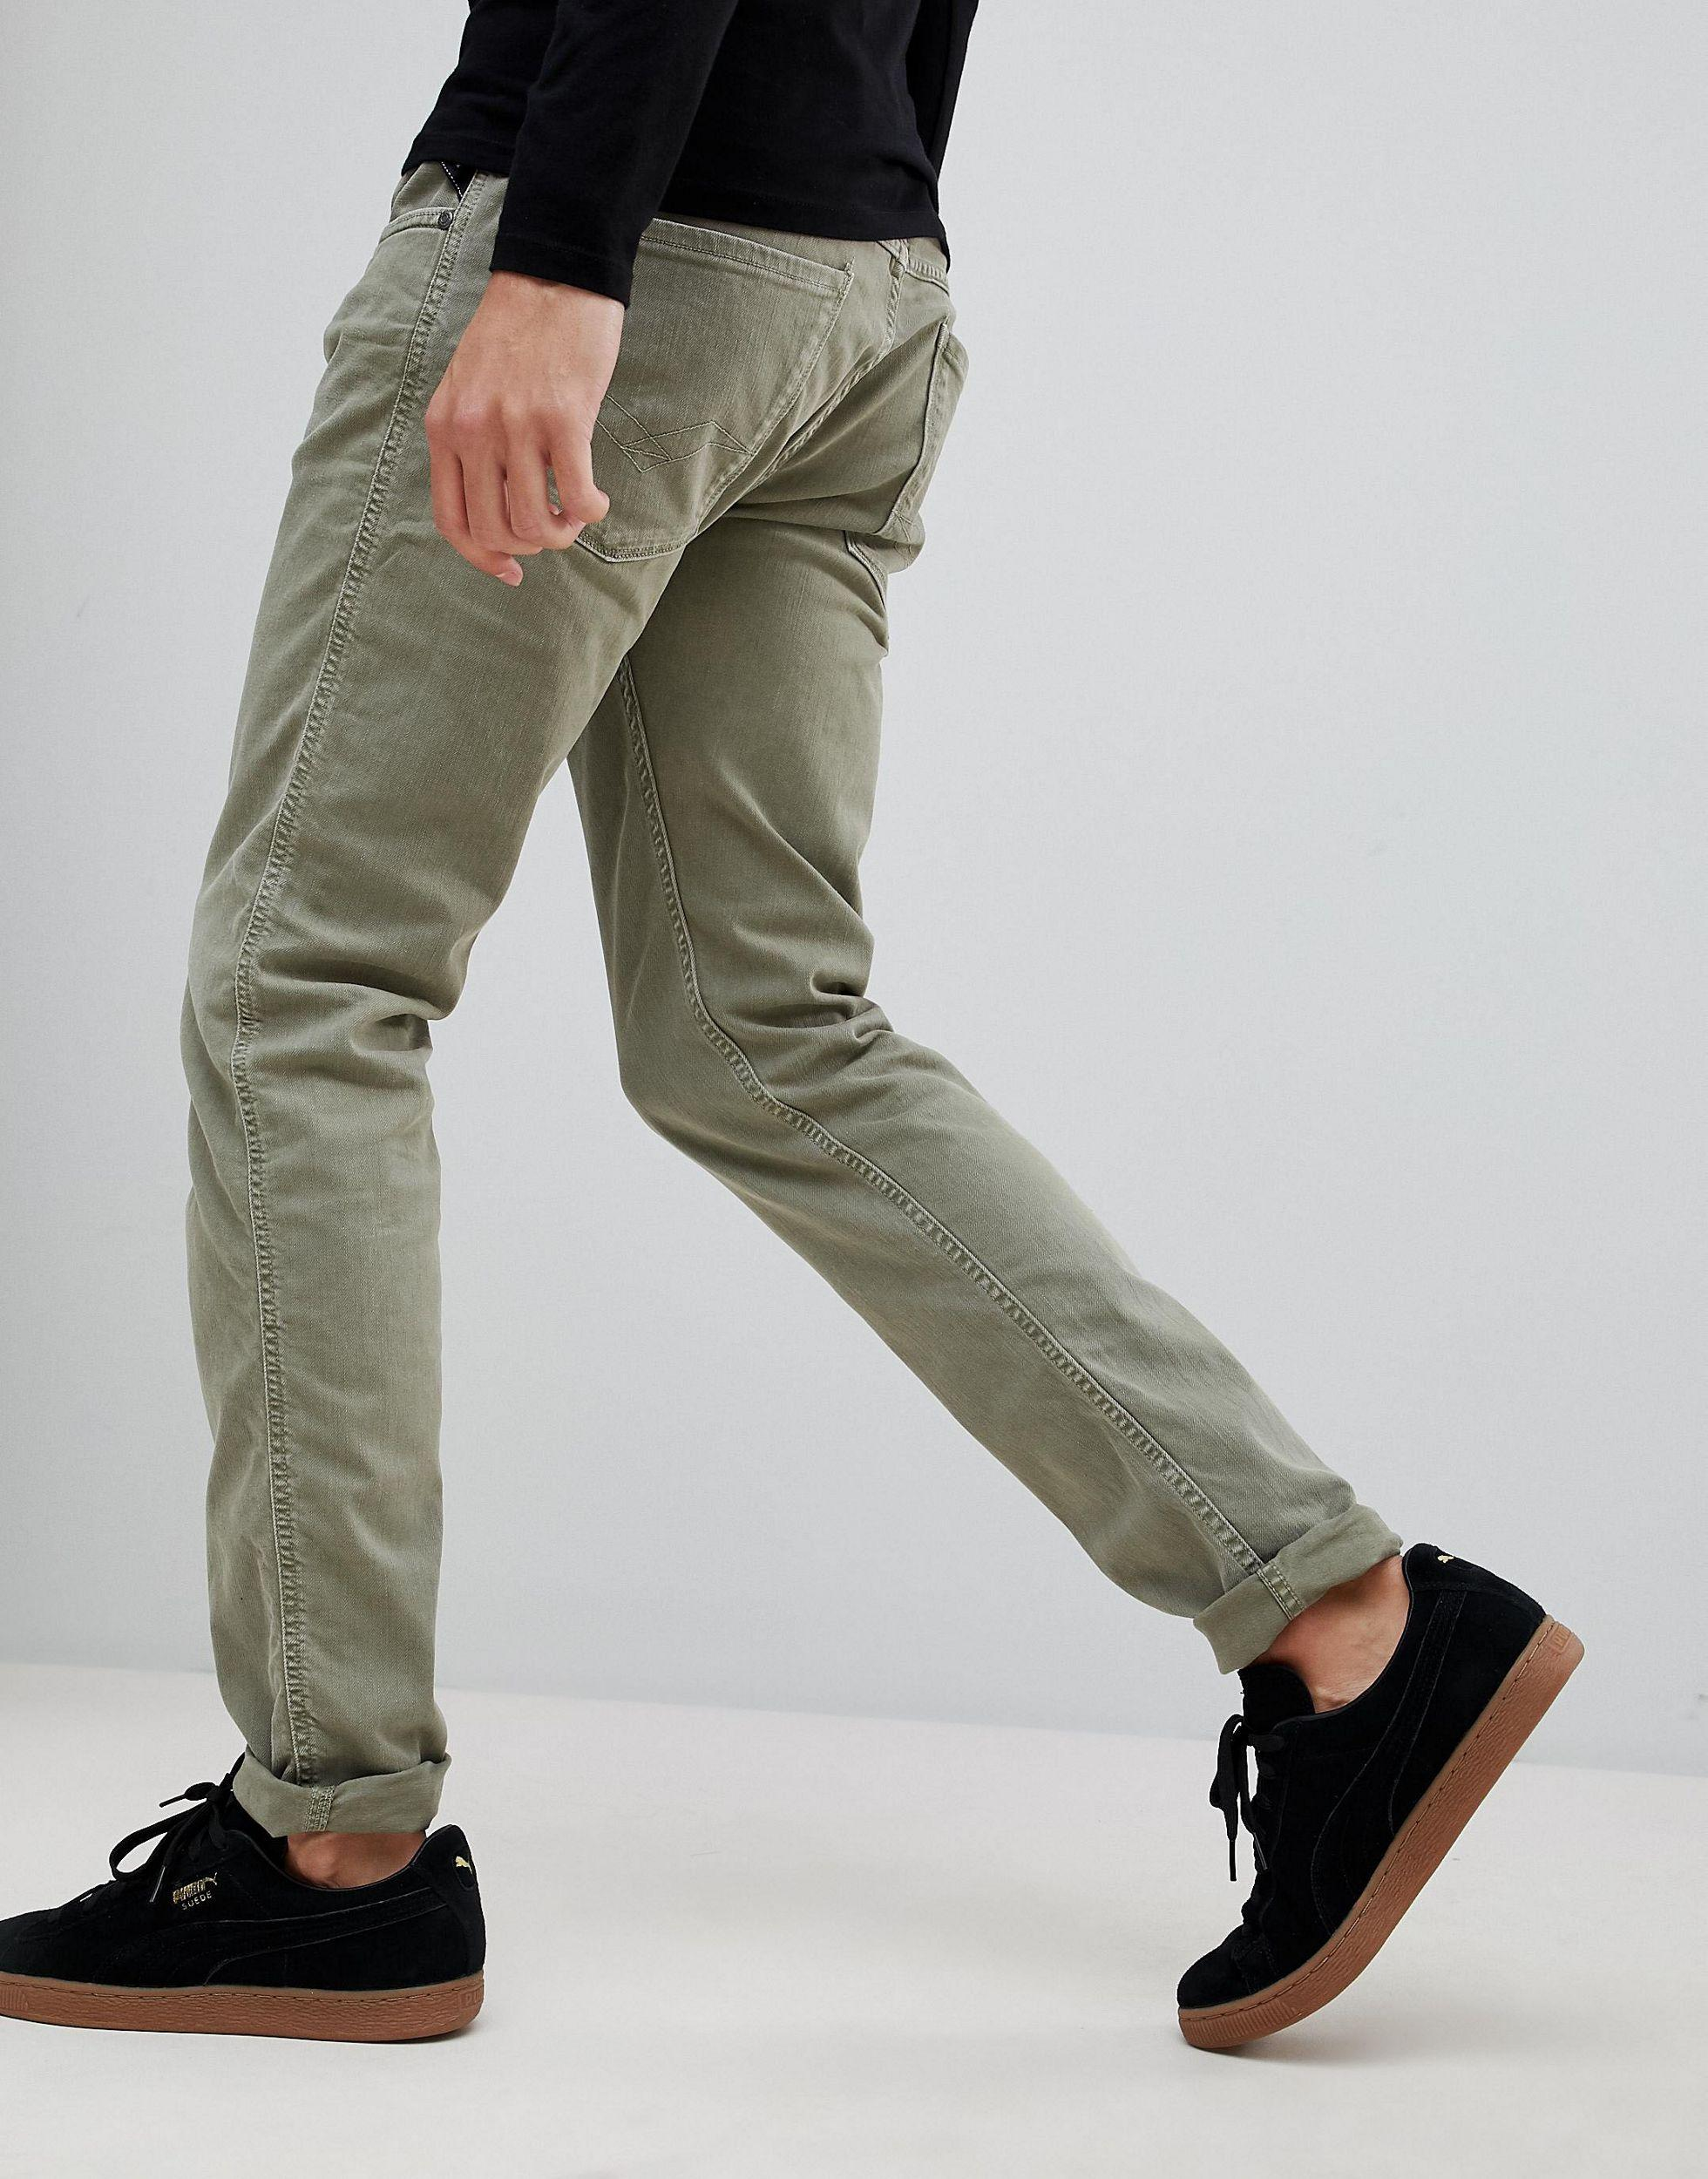 Replay Denim Anbass Slim Jeans in Green for Men